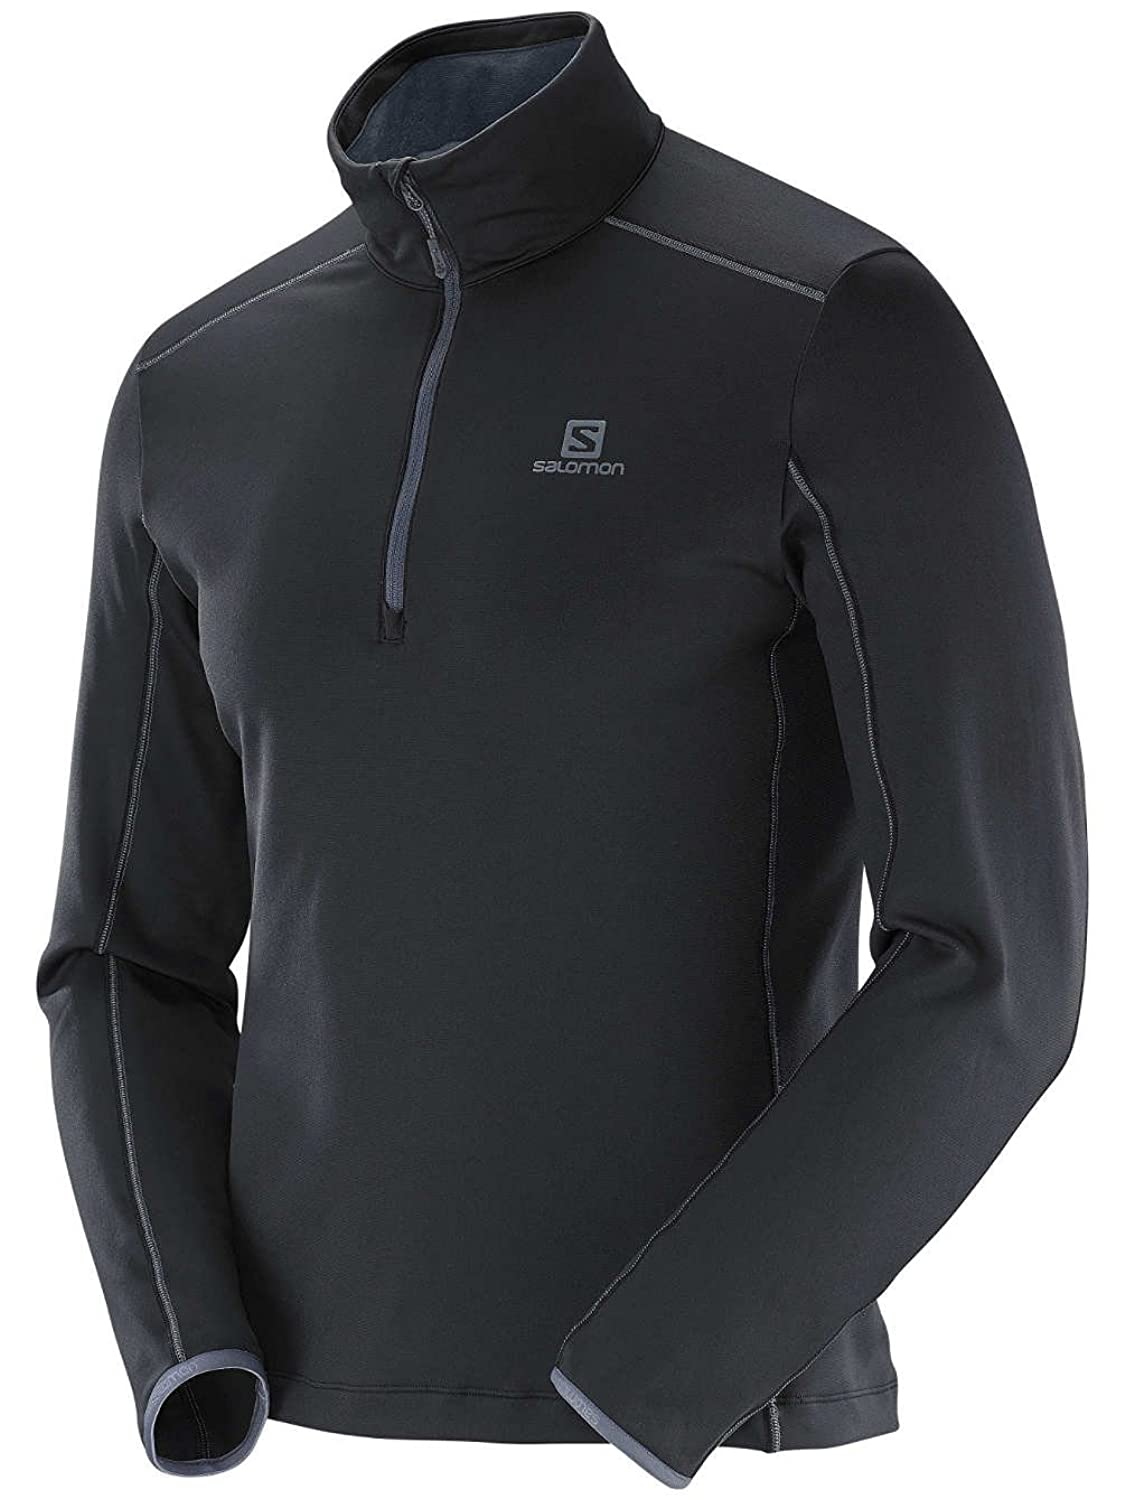 Salomon Discovery 1/2 Zip Midlayer Top - AW15